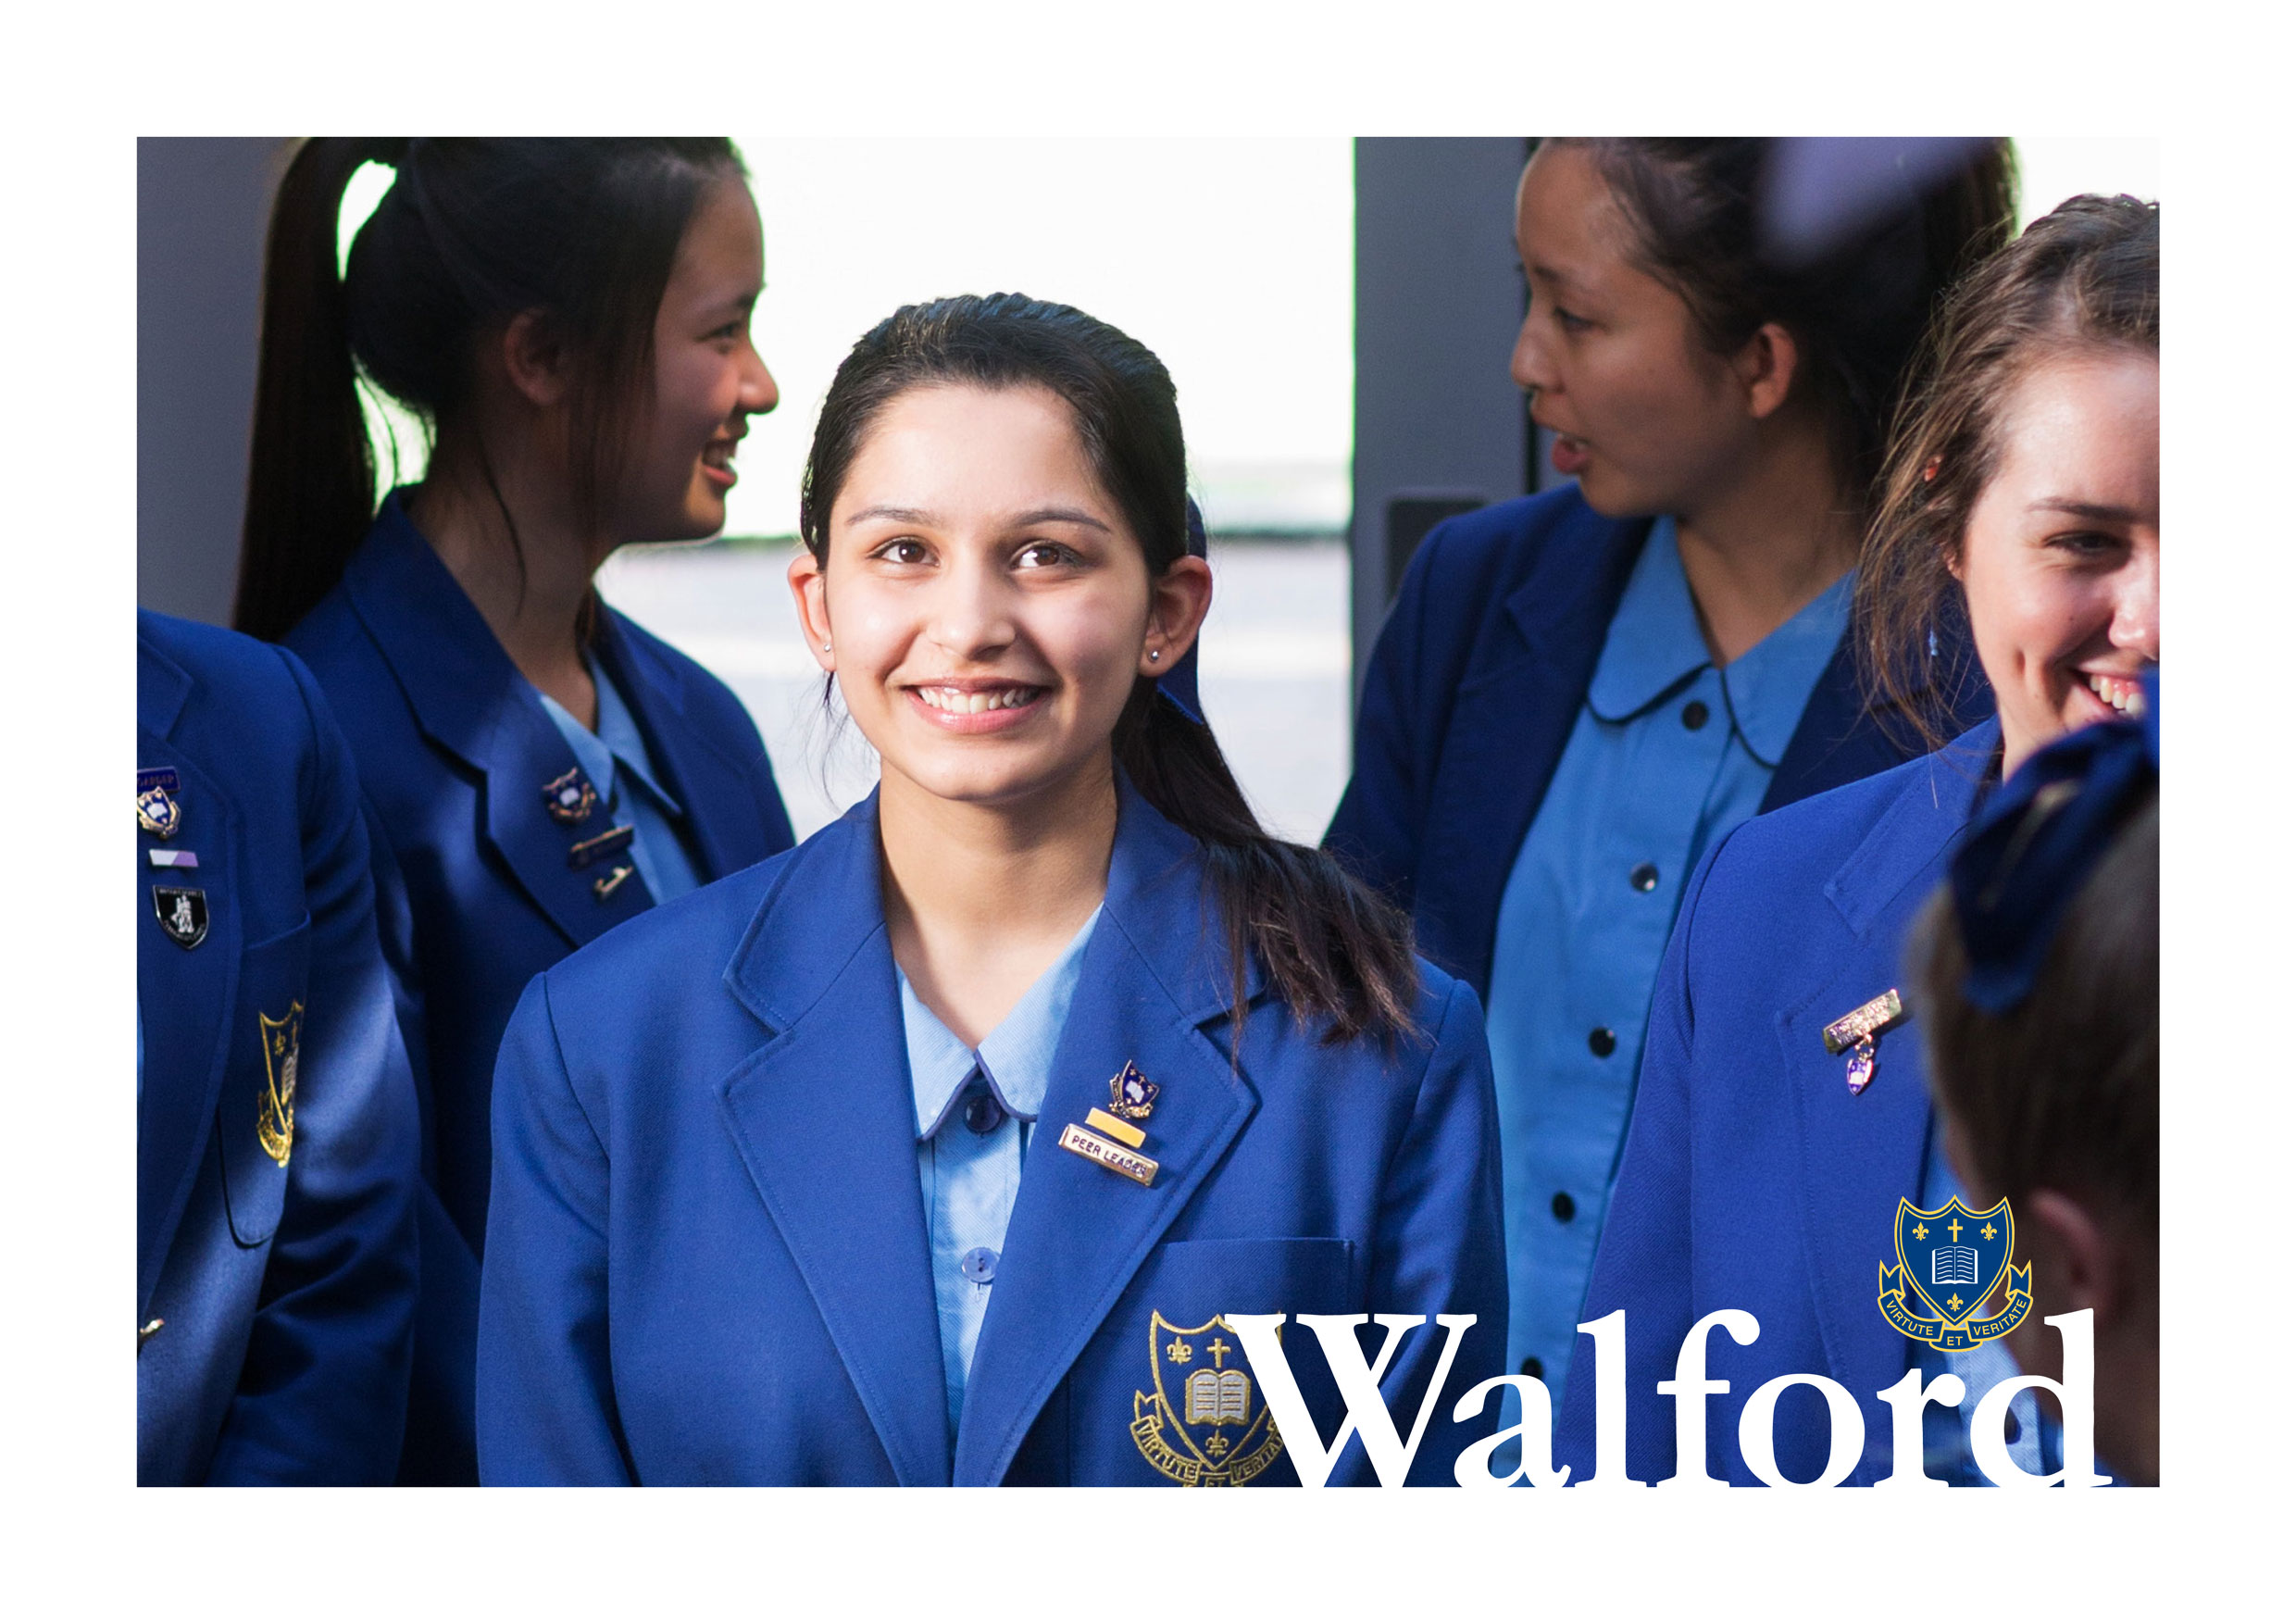 WALFORD-BRANDING-IMAGES_14